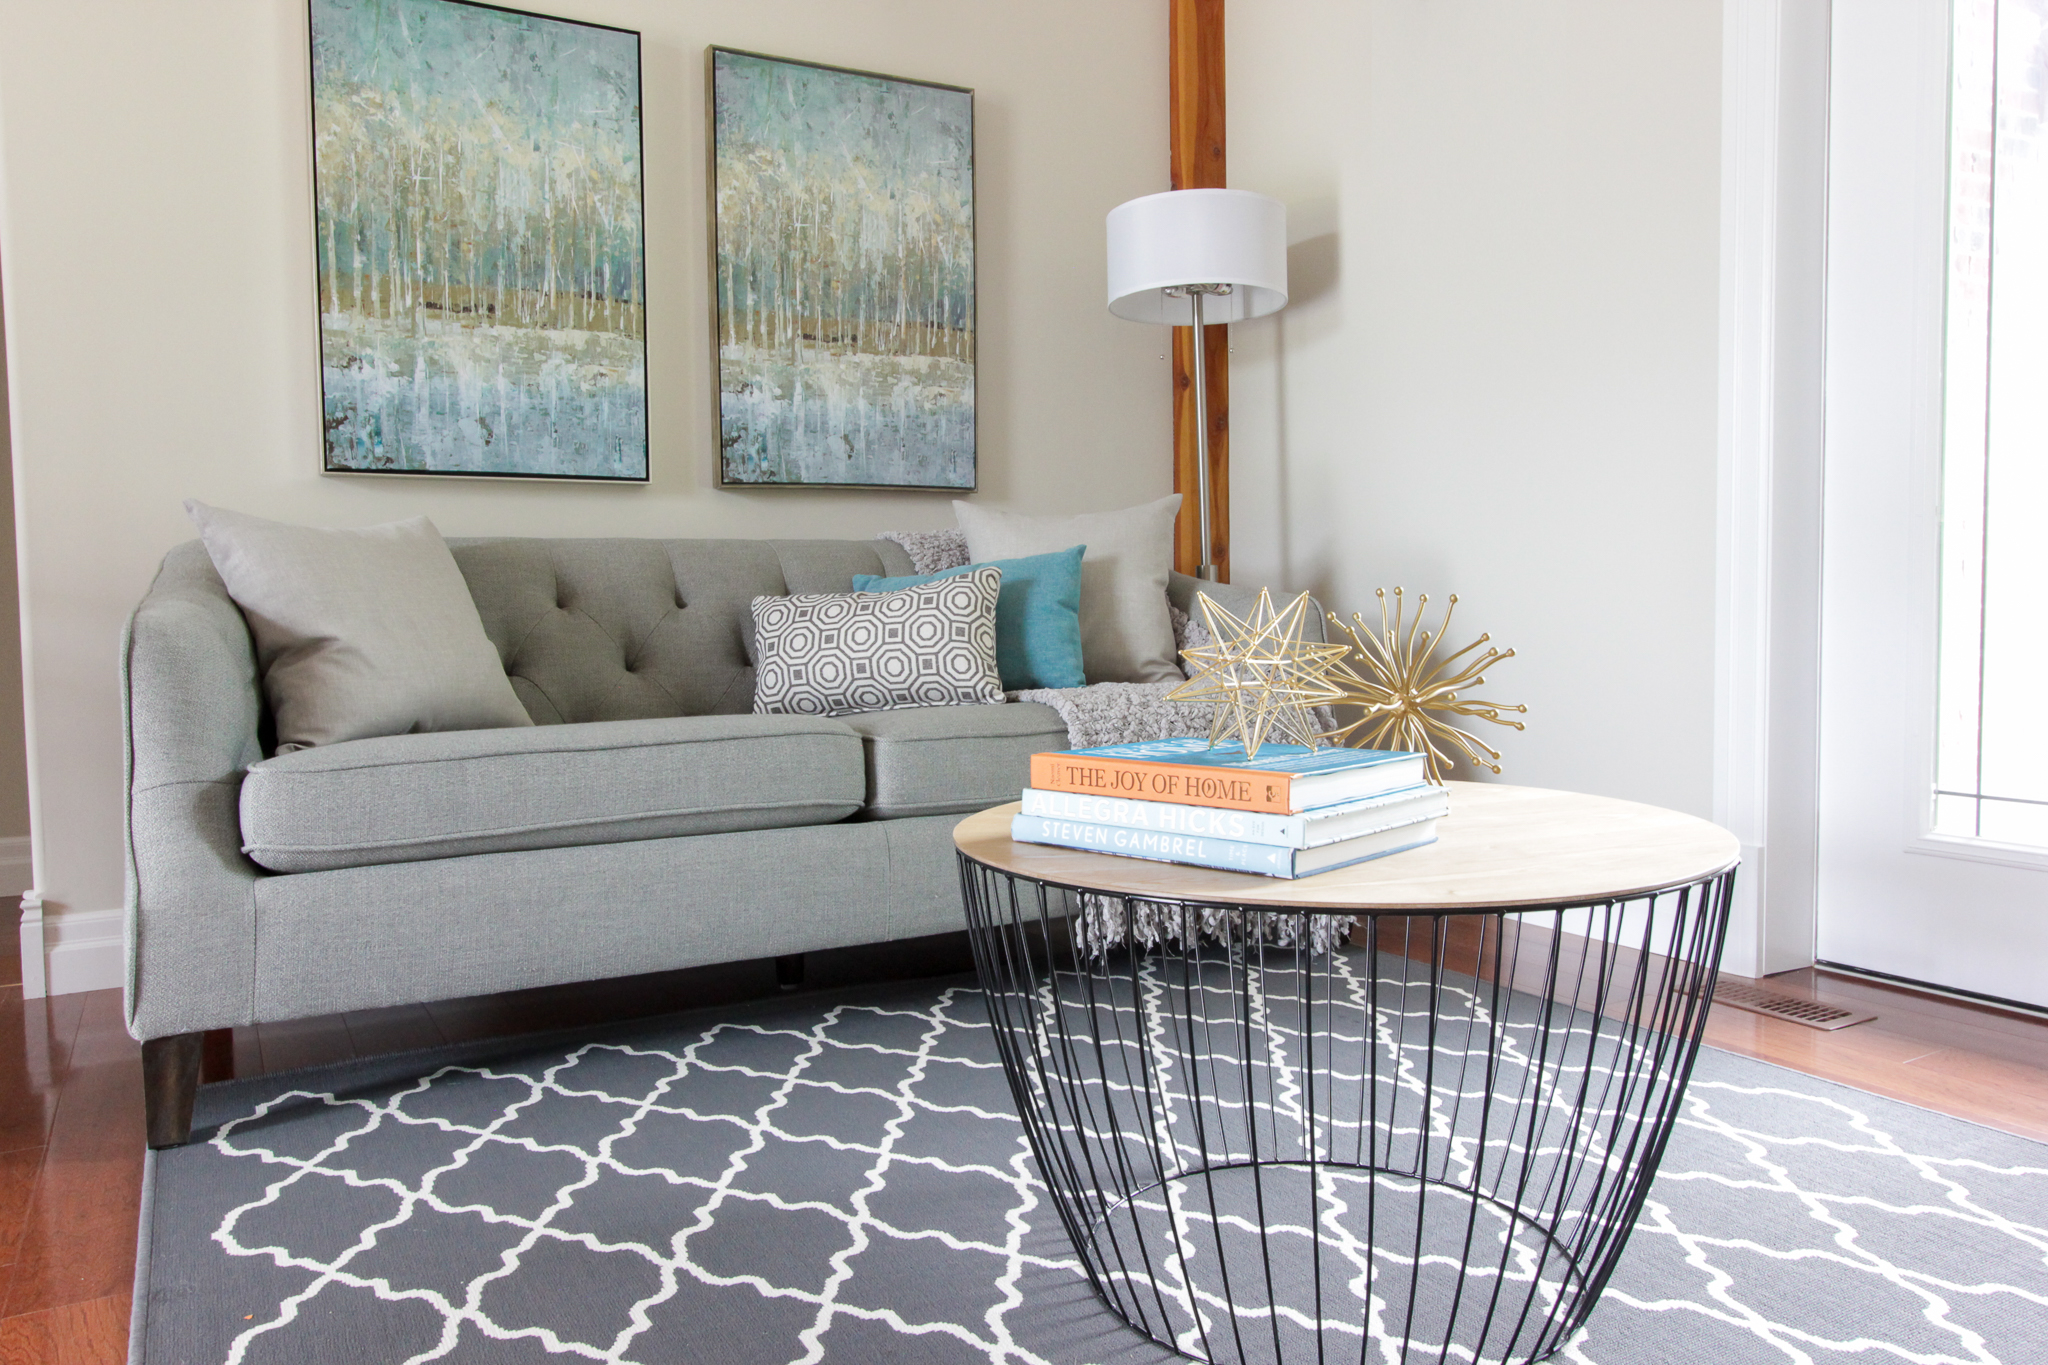 Home Staging provided by New Leaf Decor of living room in Essa- Modern pieces mixed in with colourful art and accents.